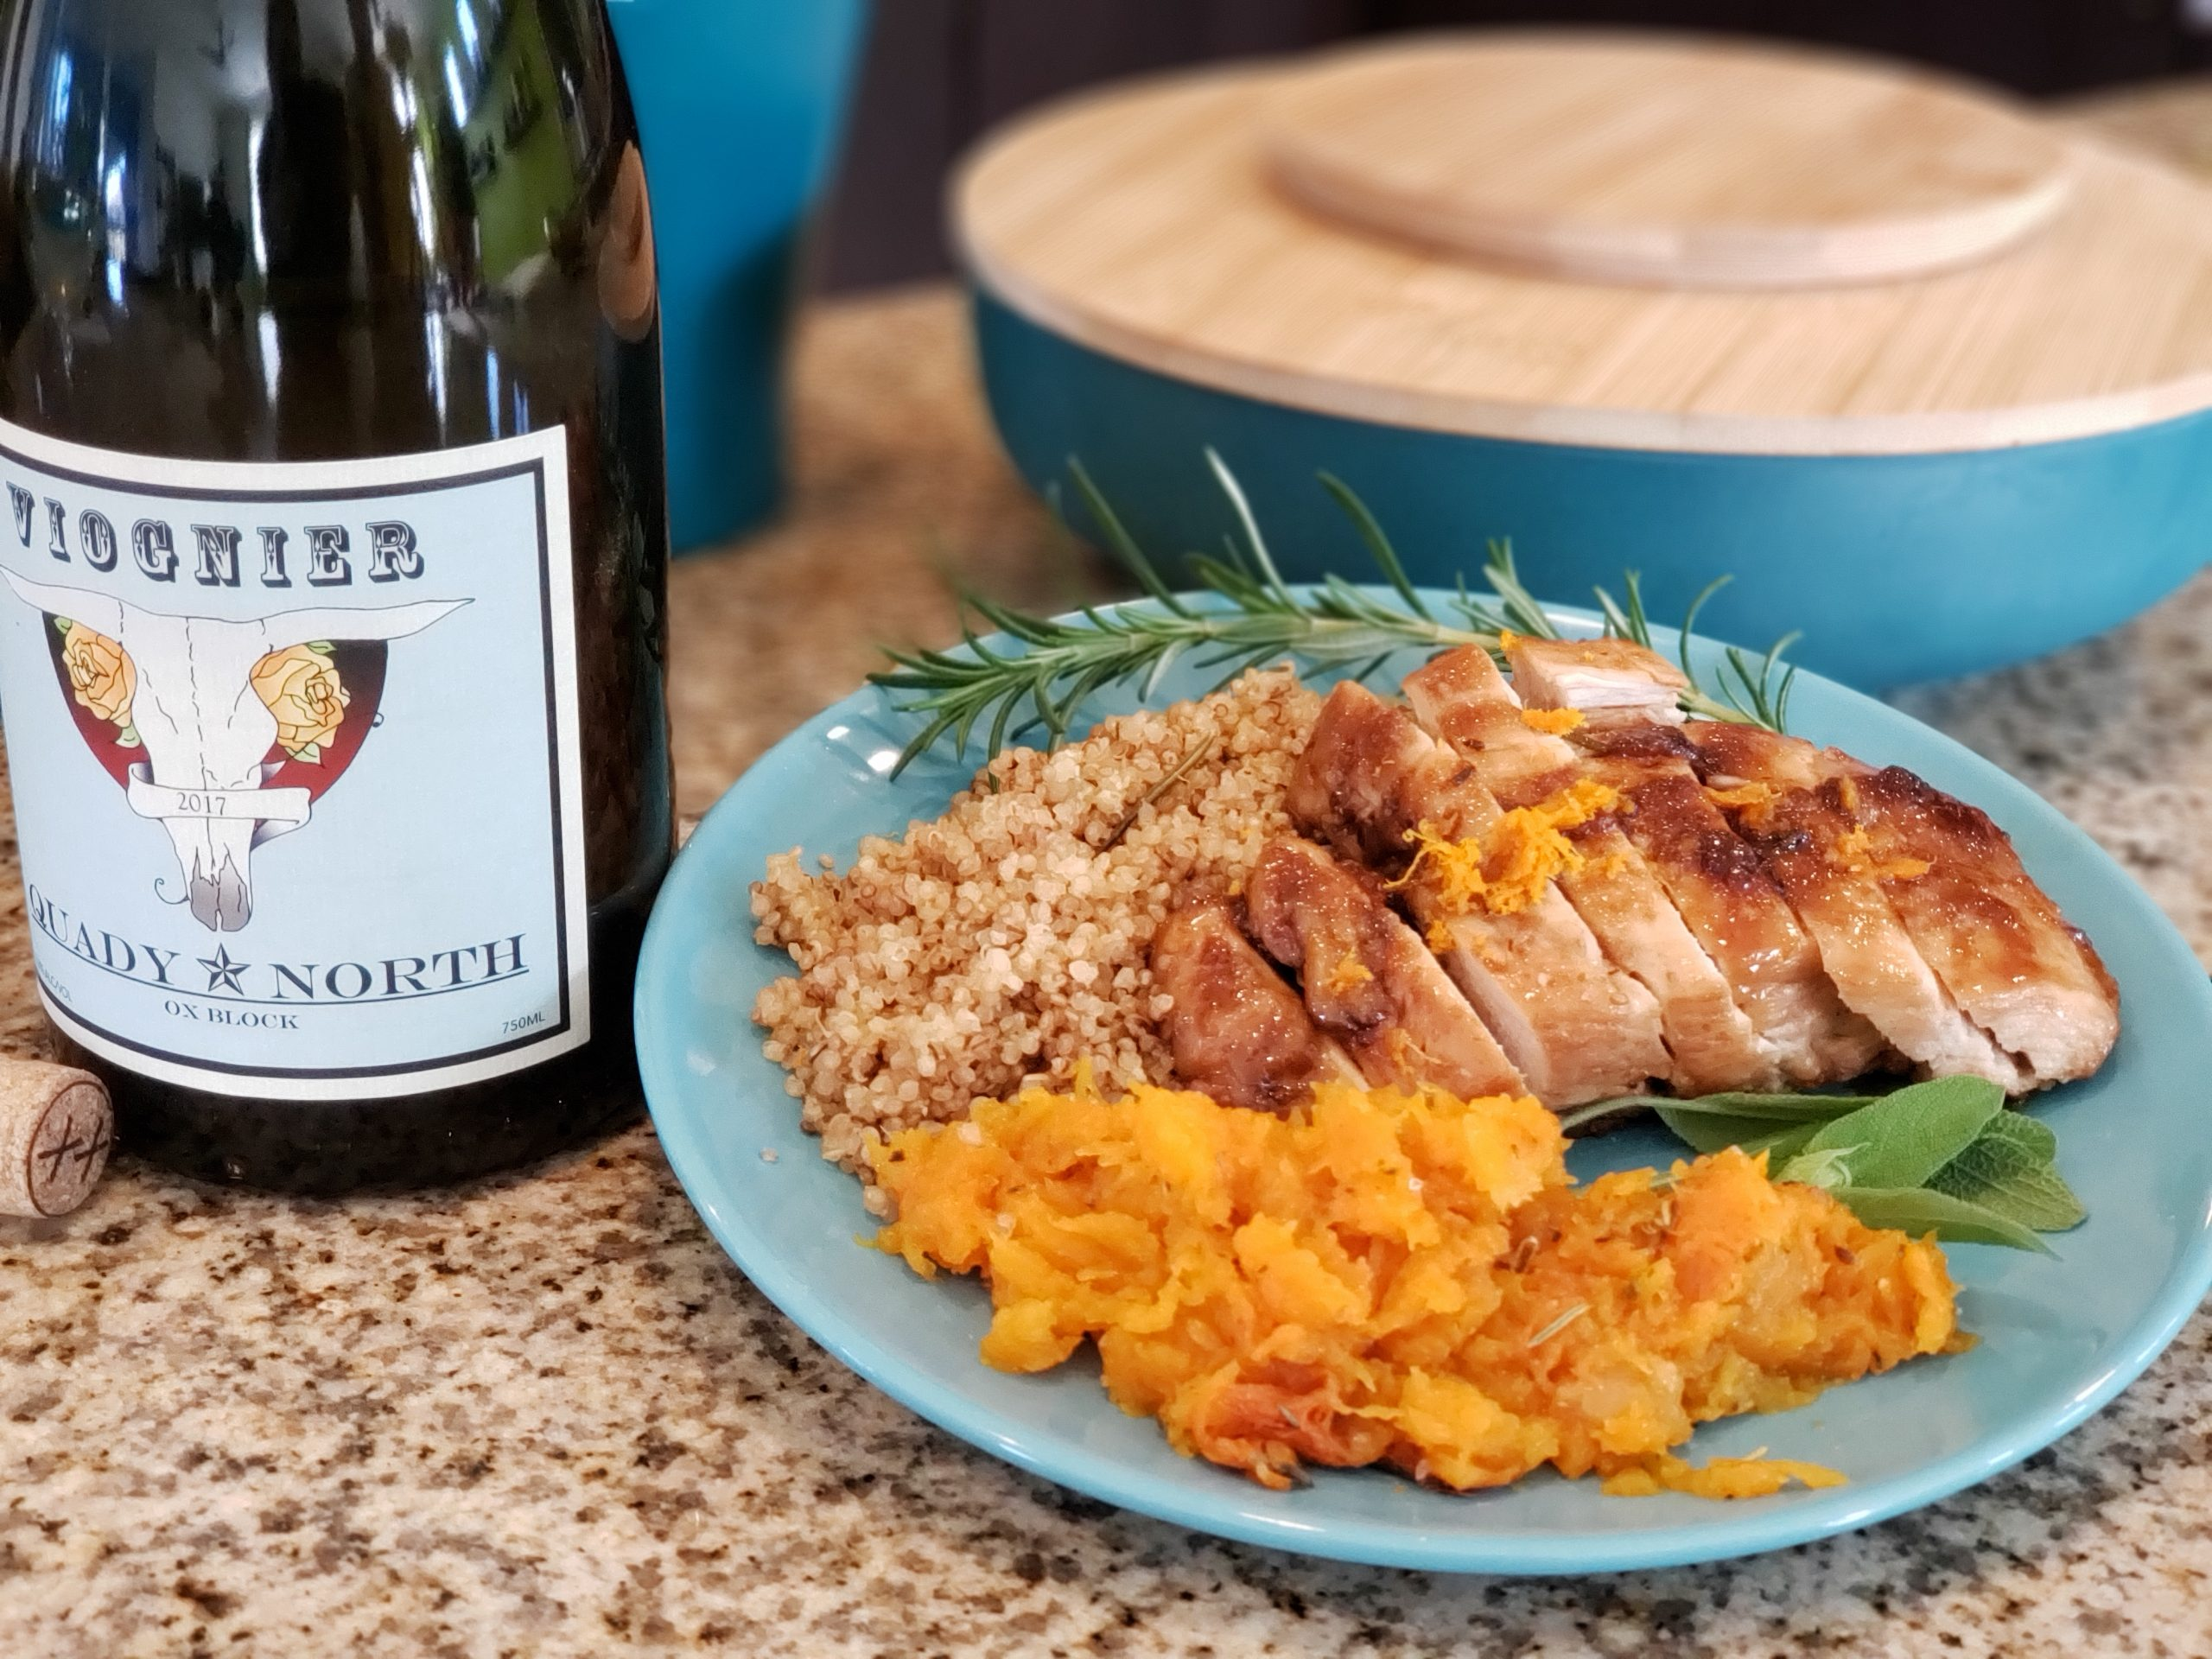 Quady North 2017 Ox block Viognier with sticky apricot chicken, a toasted herbed quinoa and butternut squash. #pantrypairings #travelinabottle